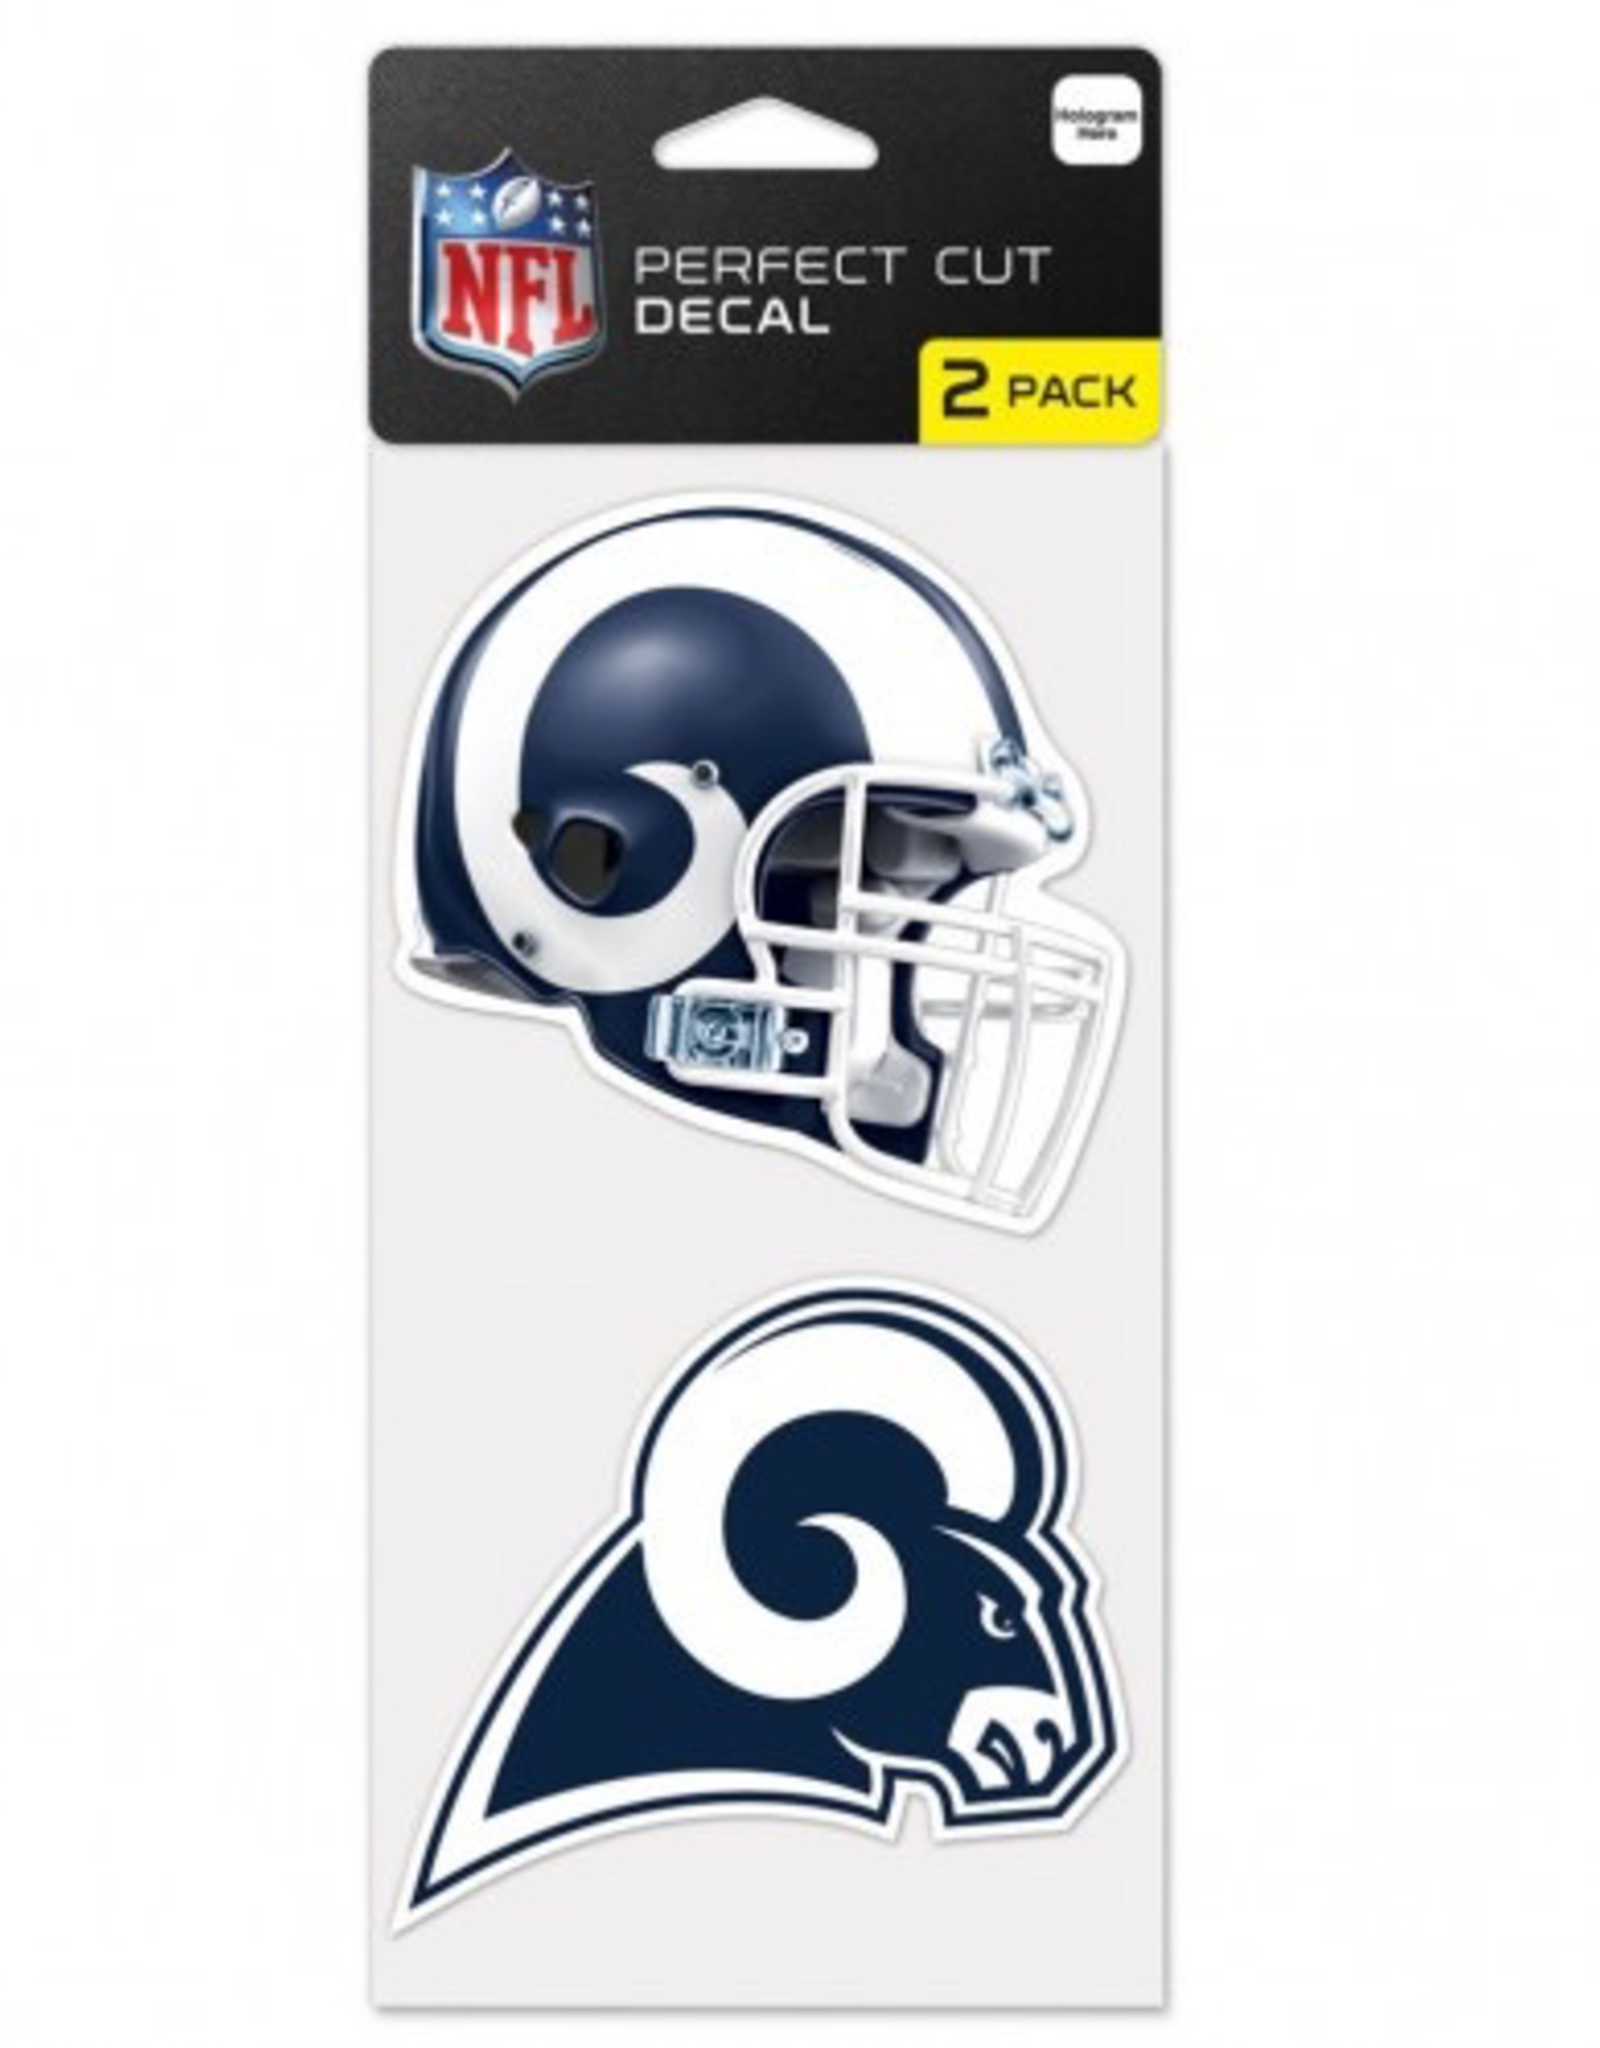 Los Angeles Rams Set of Two 4x4 Perfect Cut Decals